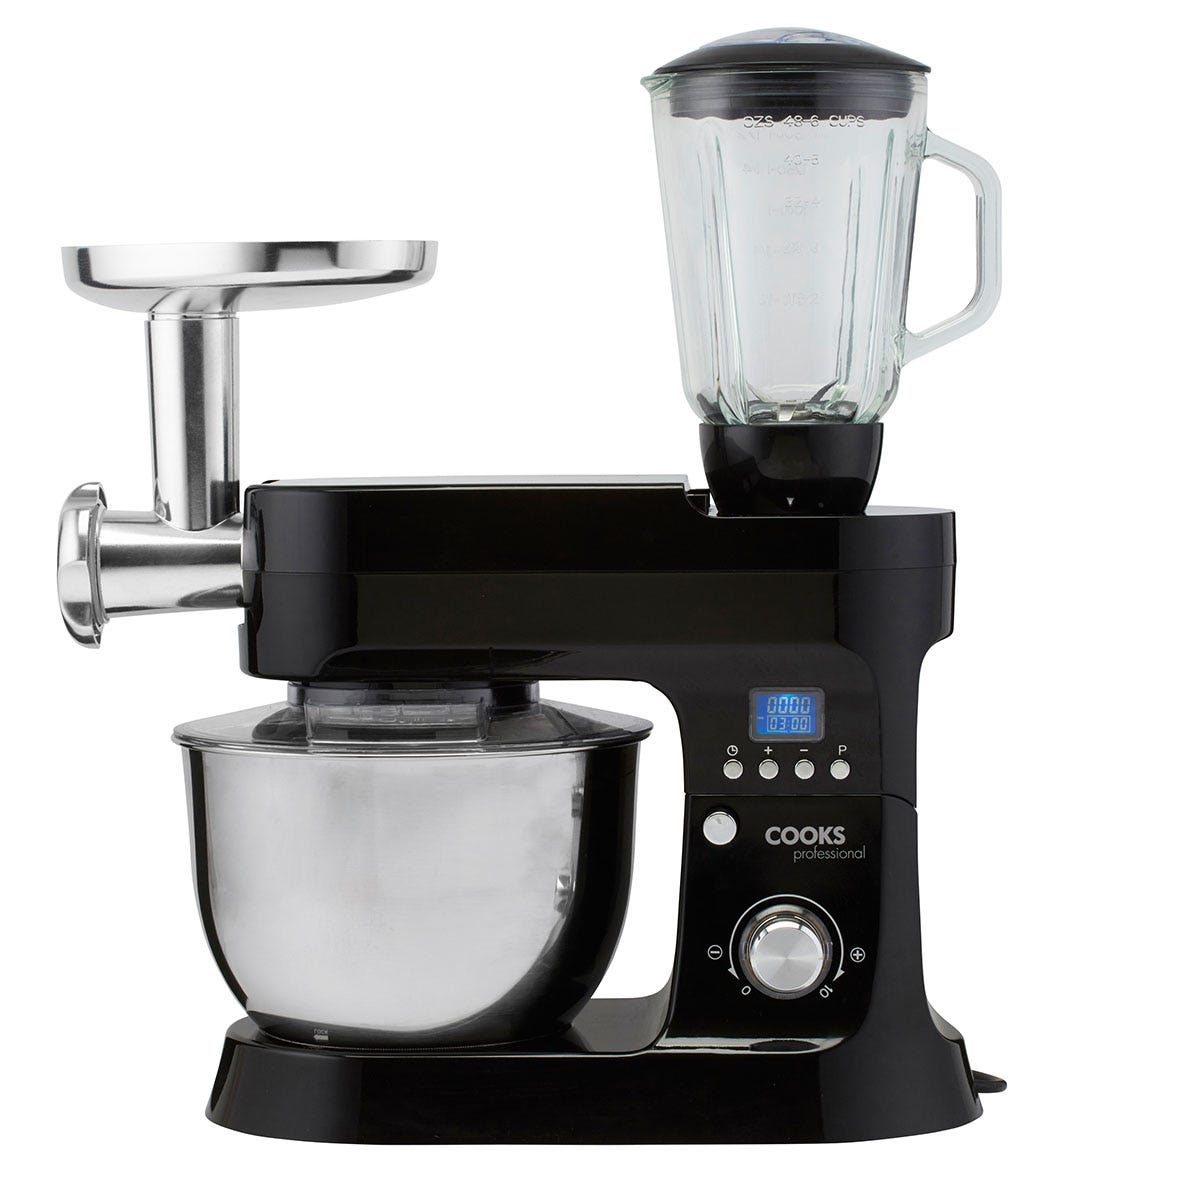 Cooks Professional G1183 MK5 1200W Multi-Functional Stand Mixer - Black